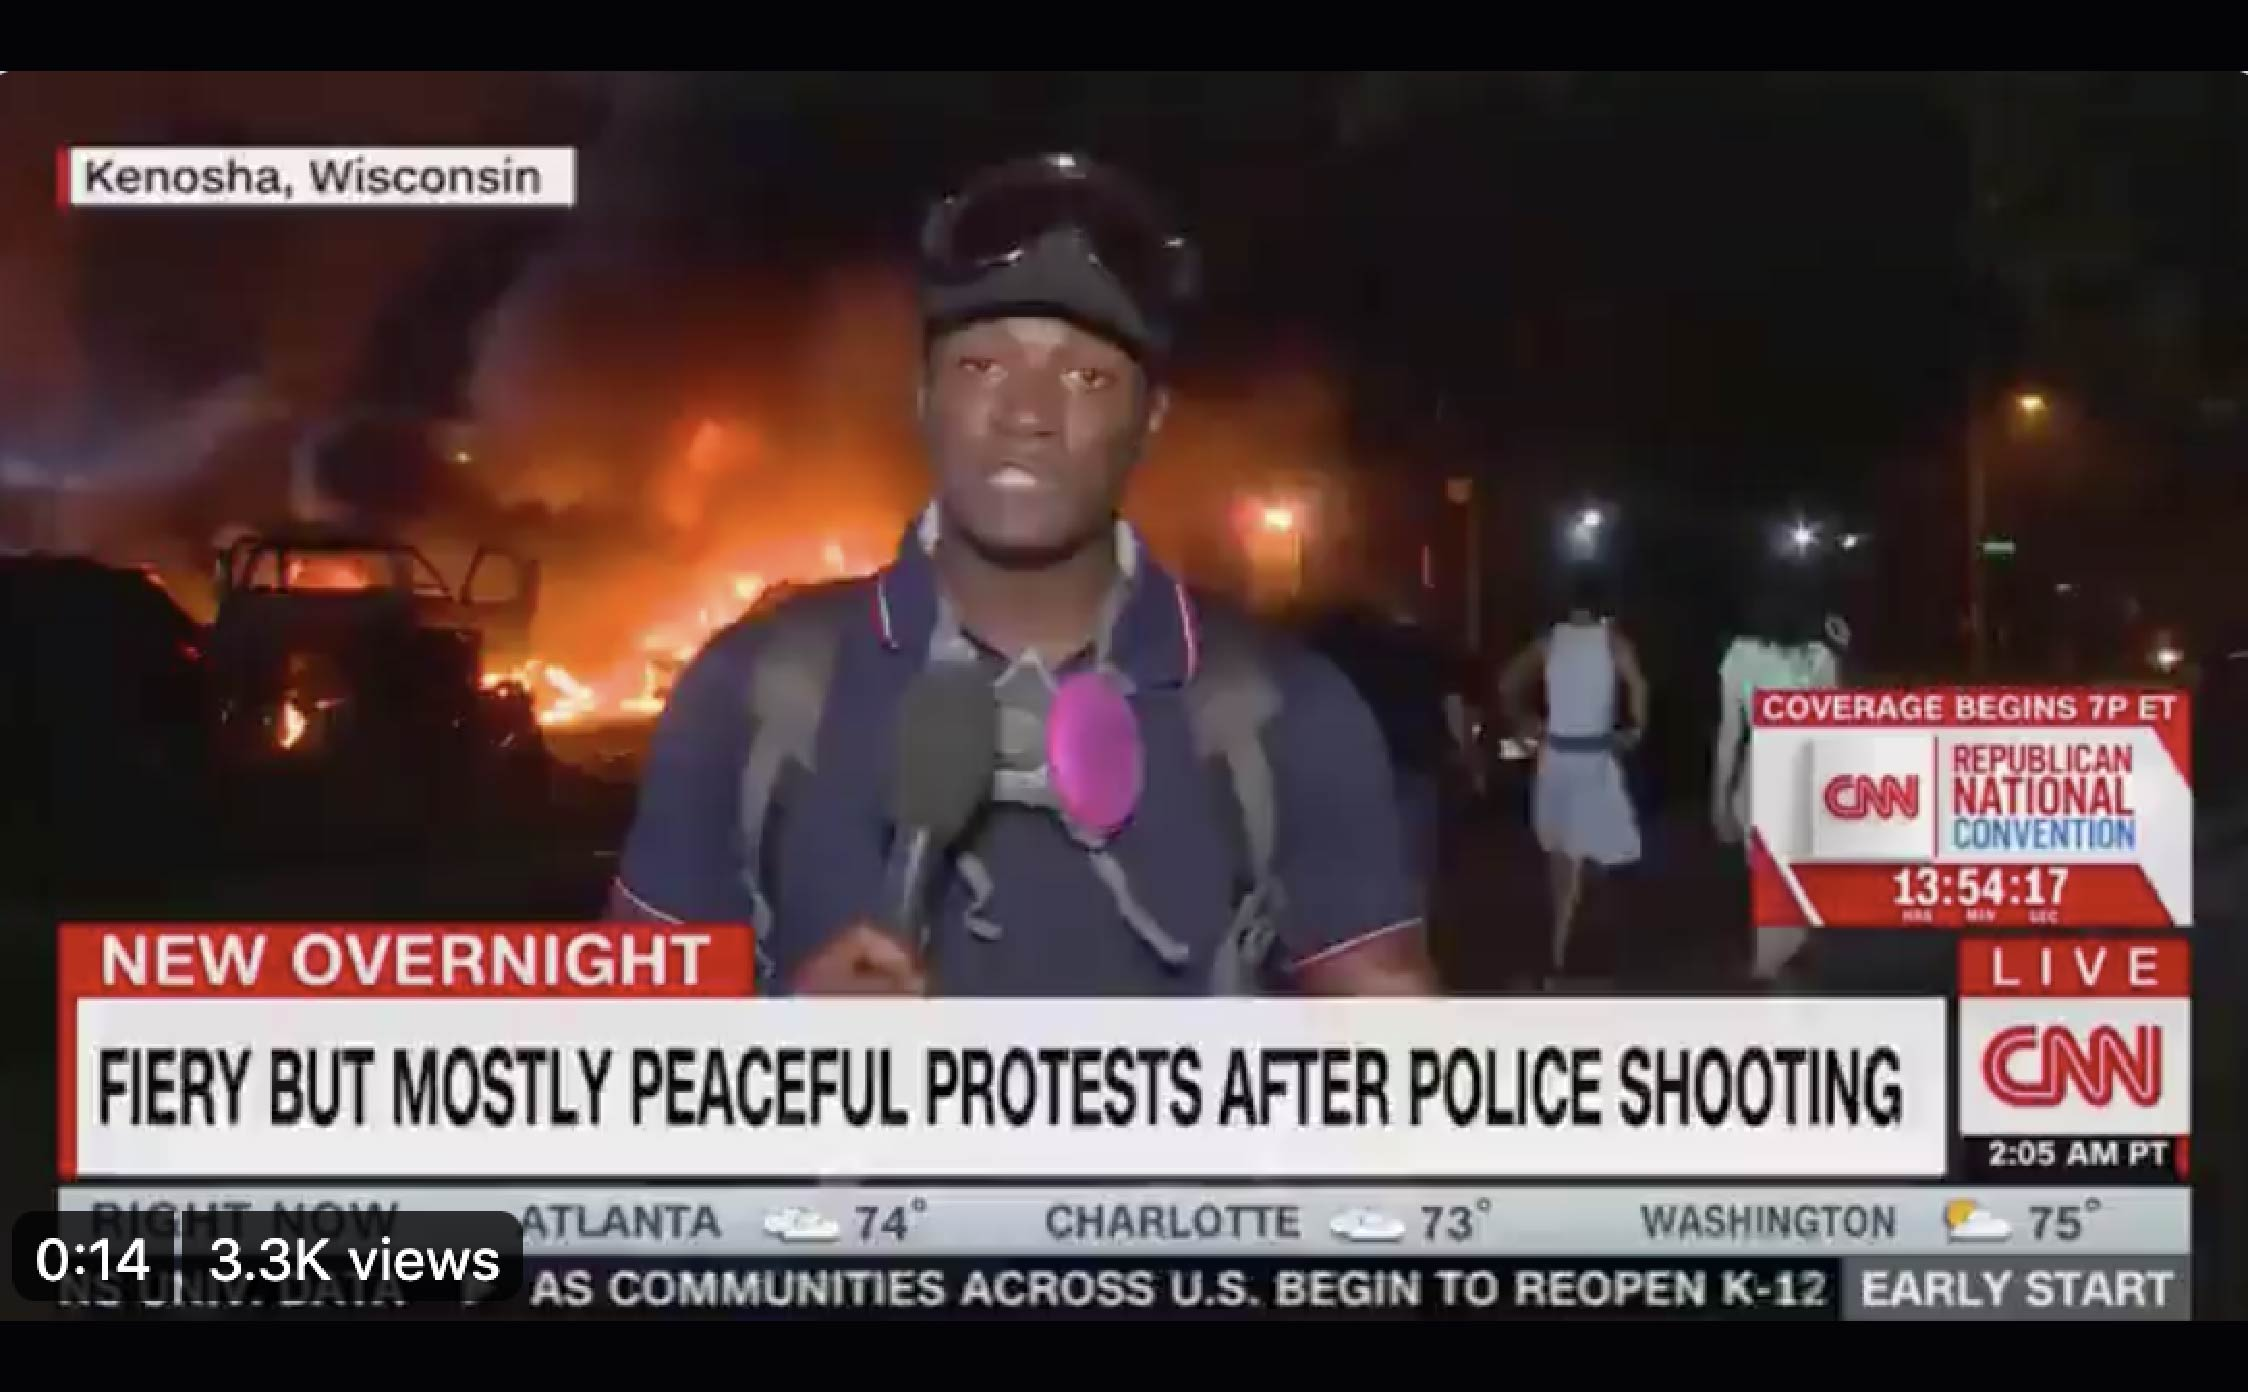 """CNN Gets Brutally Mocked For Pushing Most Absurd """"Peaceful Protest Propaganda"""" of All Time..."""